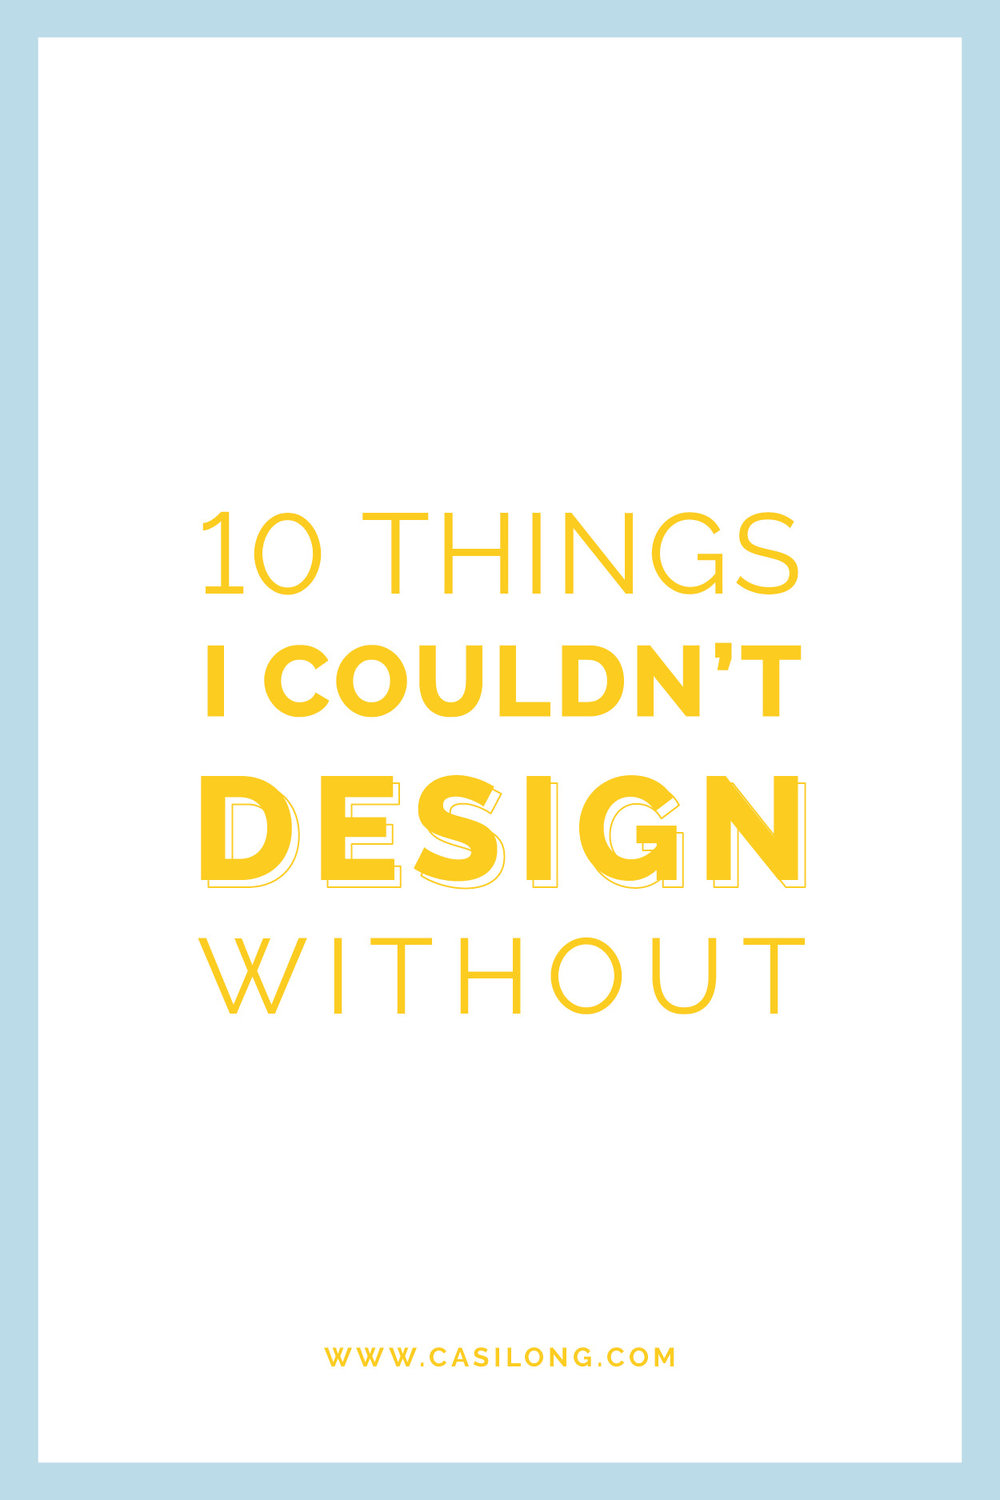 10 Things I Couldn't Design Without | casilong.com/blog | #casilongdesign #fearlesspursuit